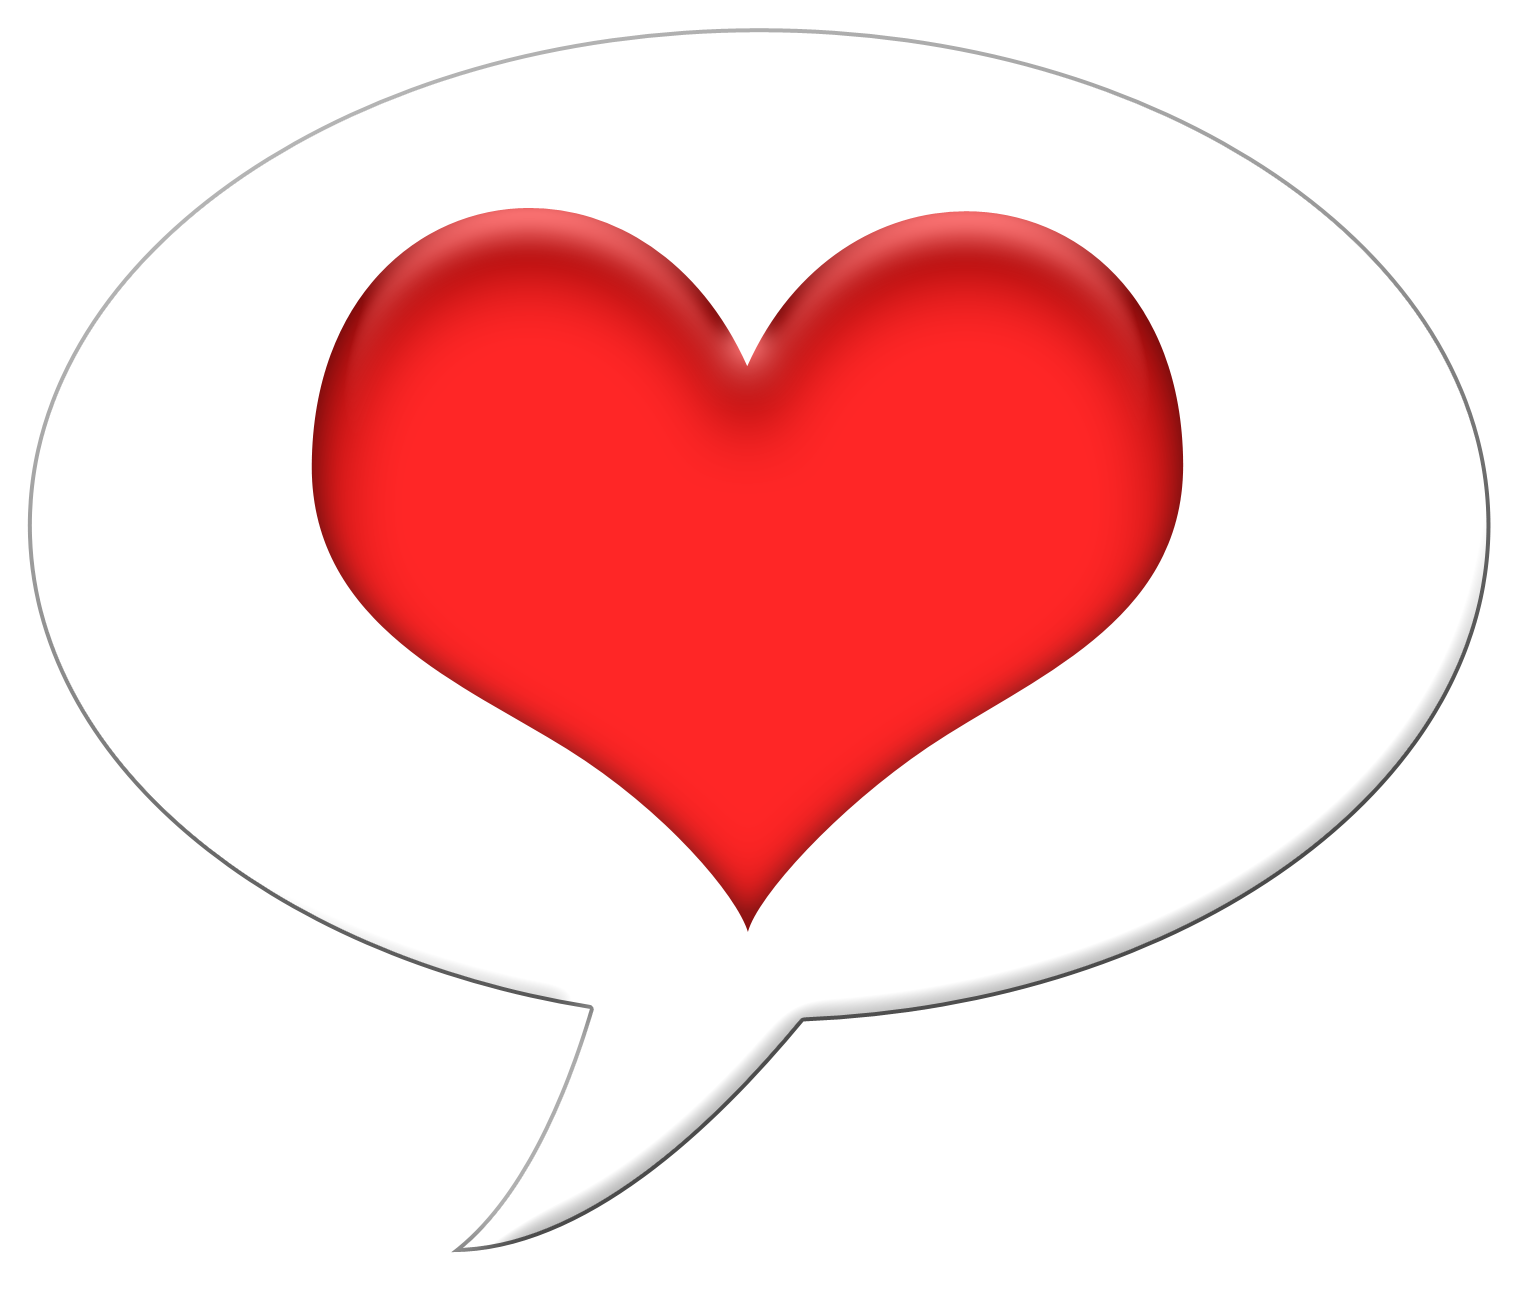 Talk heart karen cookie. Conversation clipart speech bubble